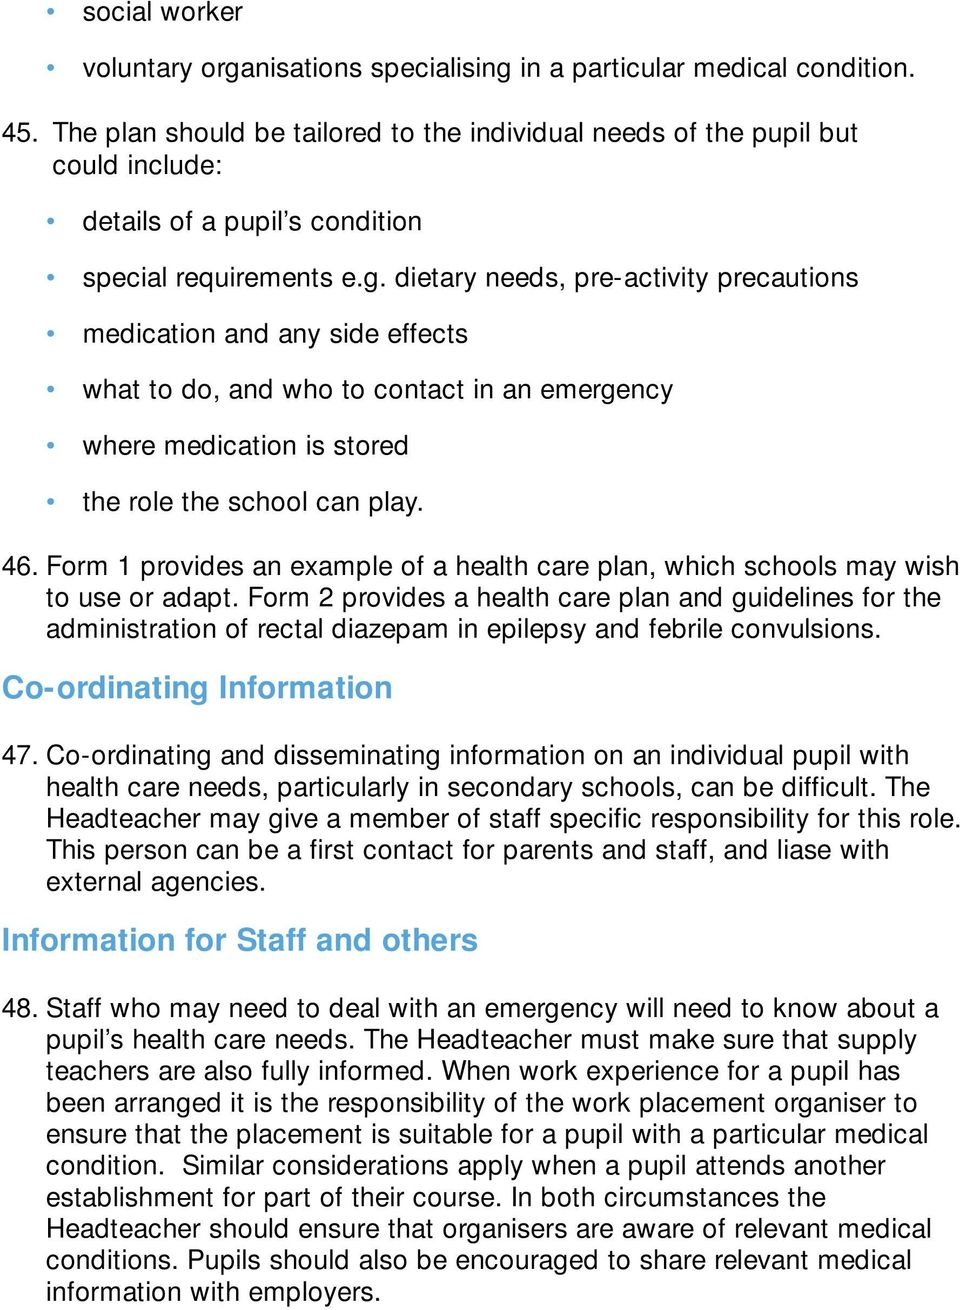 dietary needs, pre-activity precautions medication and any side effects what to do, and who to contact in an emergency where medication is stored the role the school can play. 46.